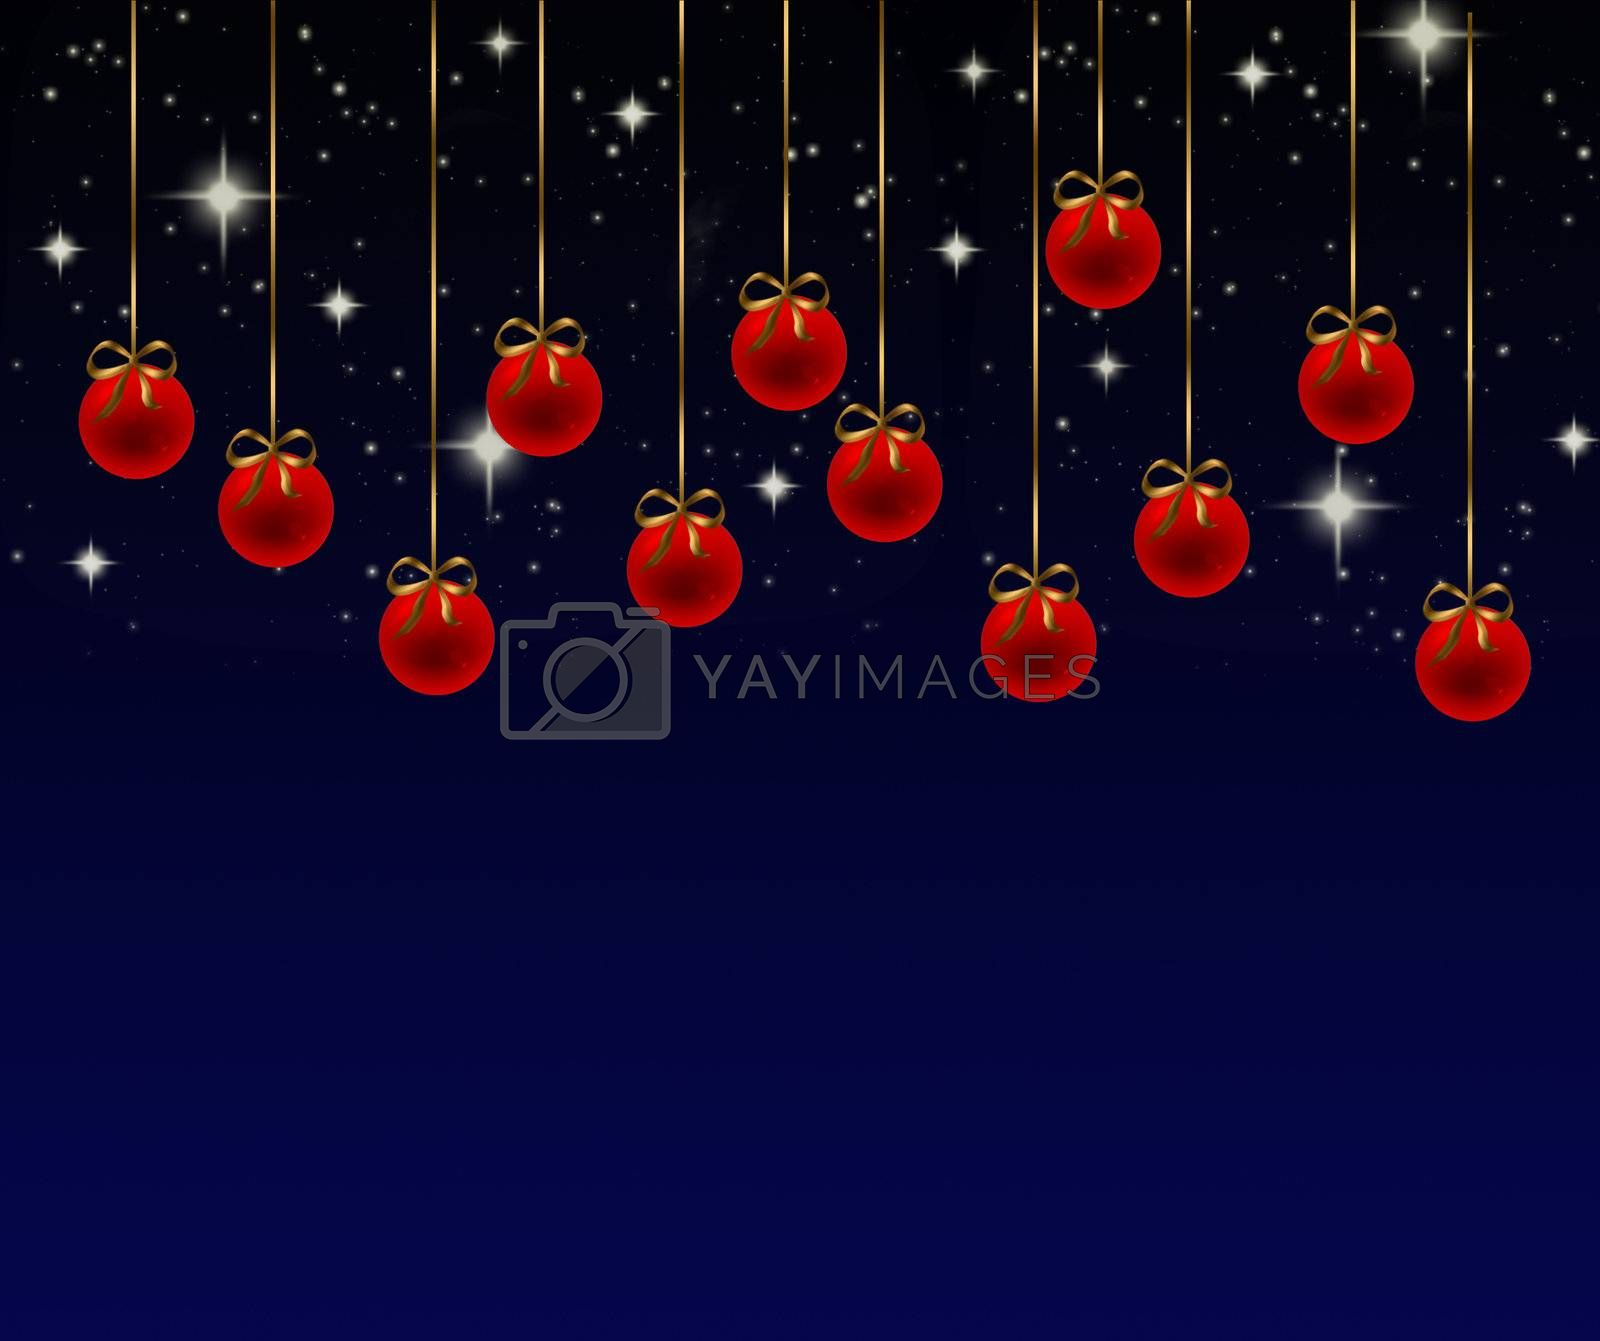 Series of red Christmas balls on a blue background